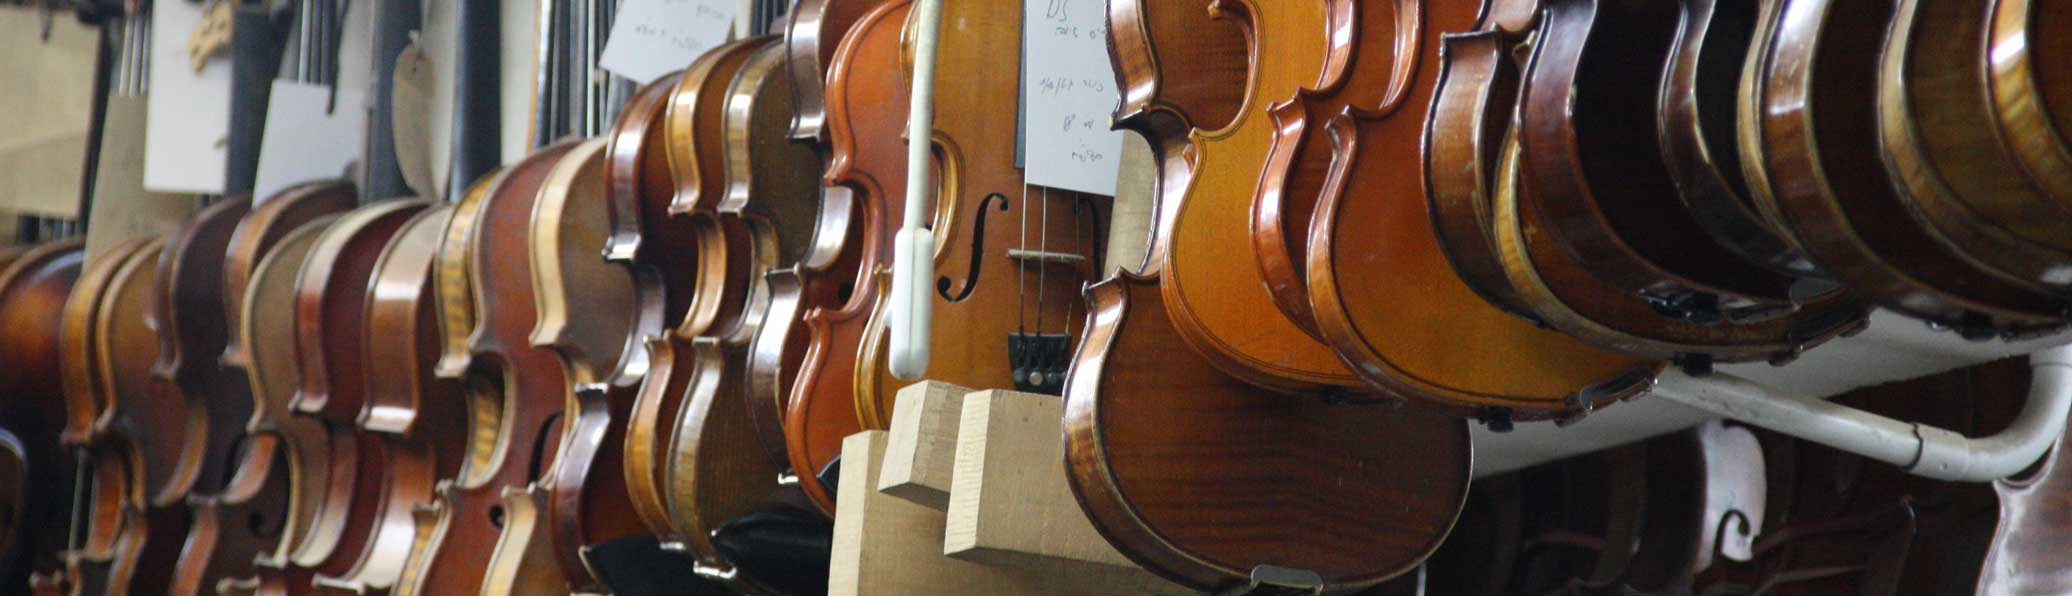 Photo of violins